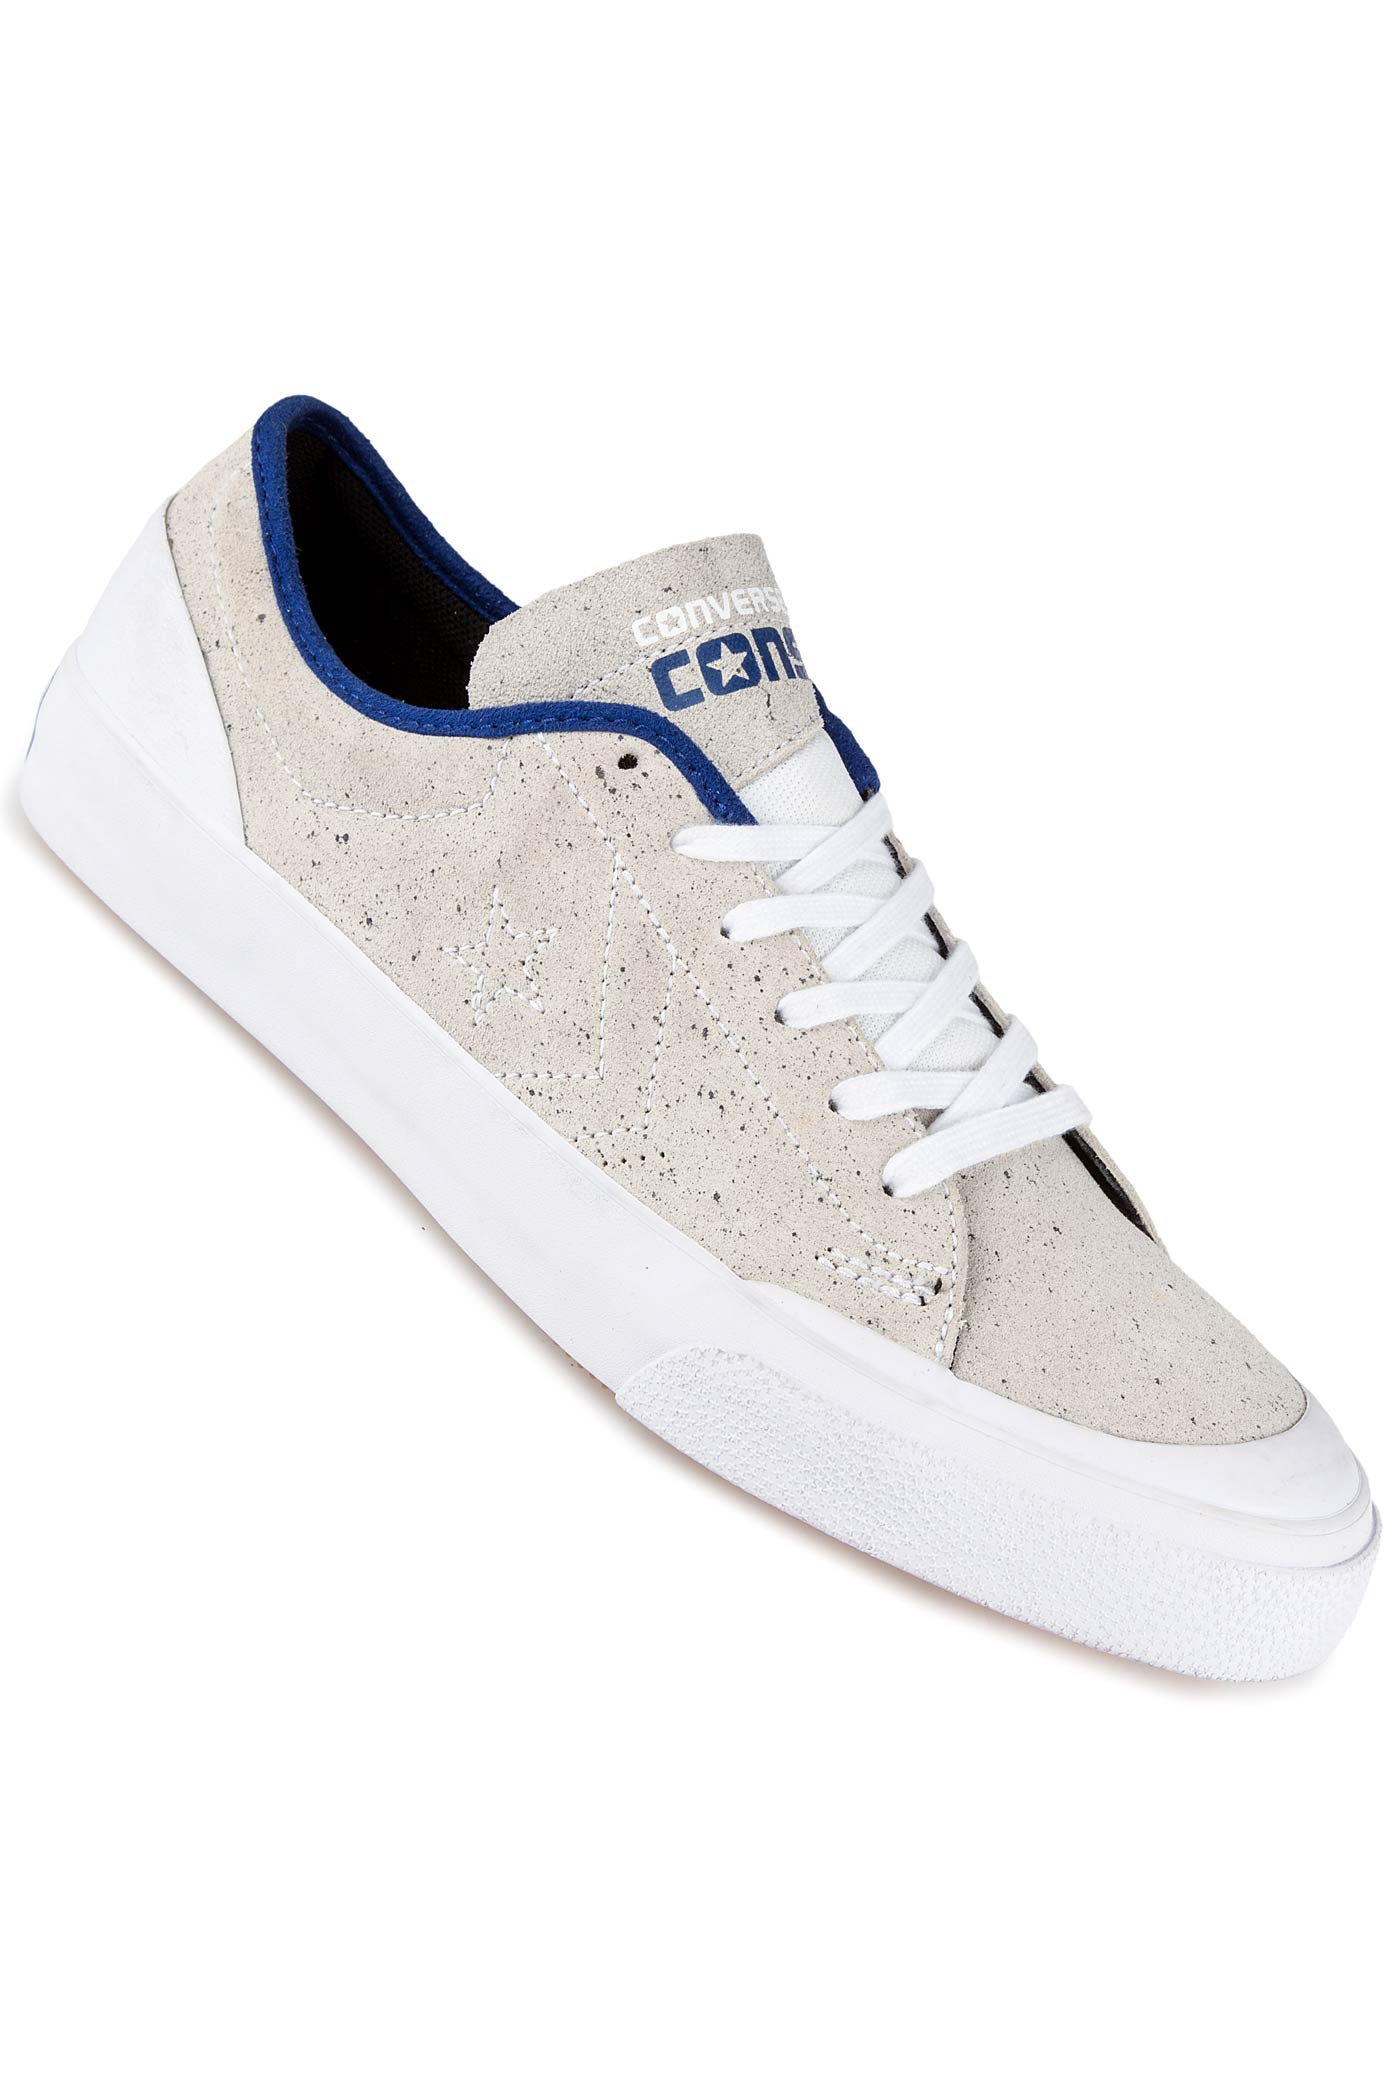 Converse shoes blue and black